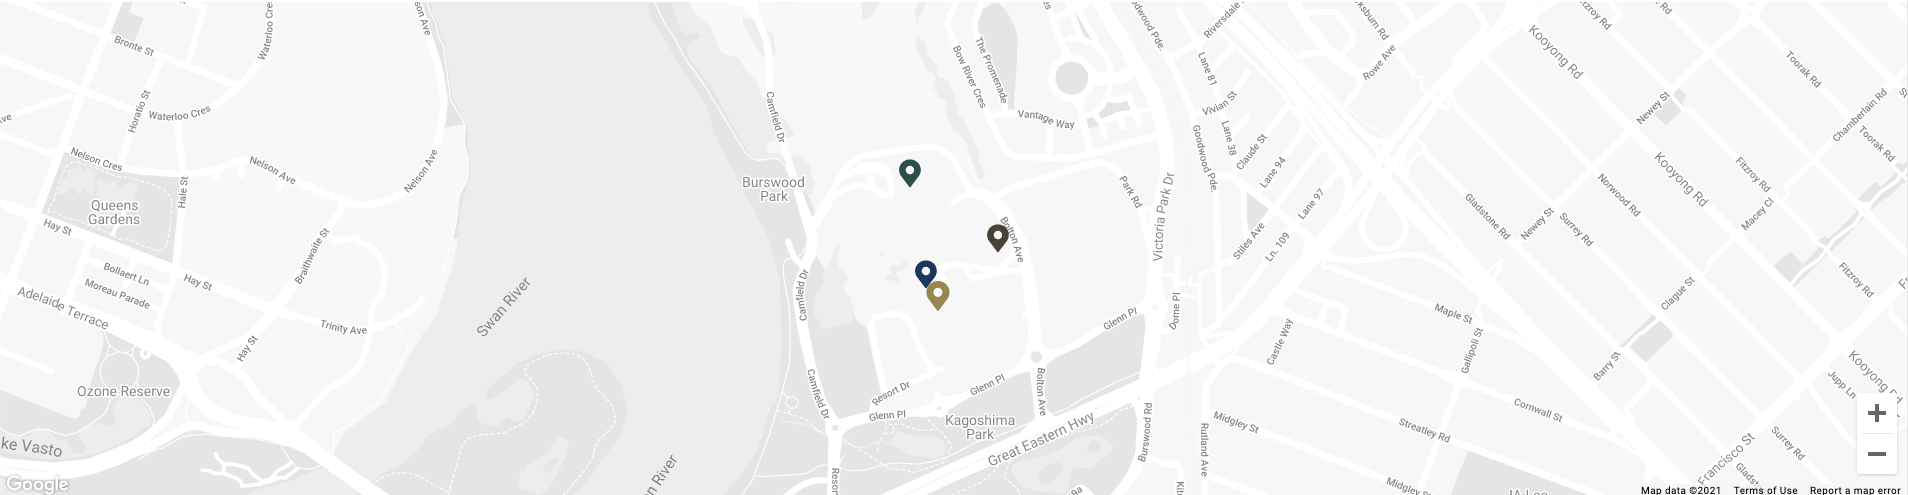 Map image of Silks